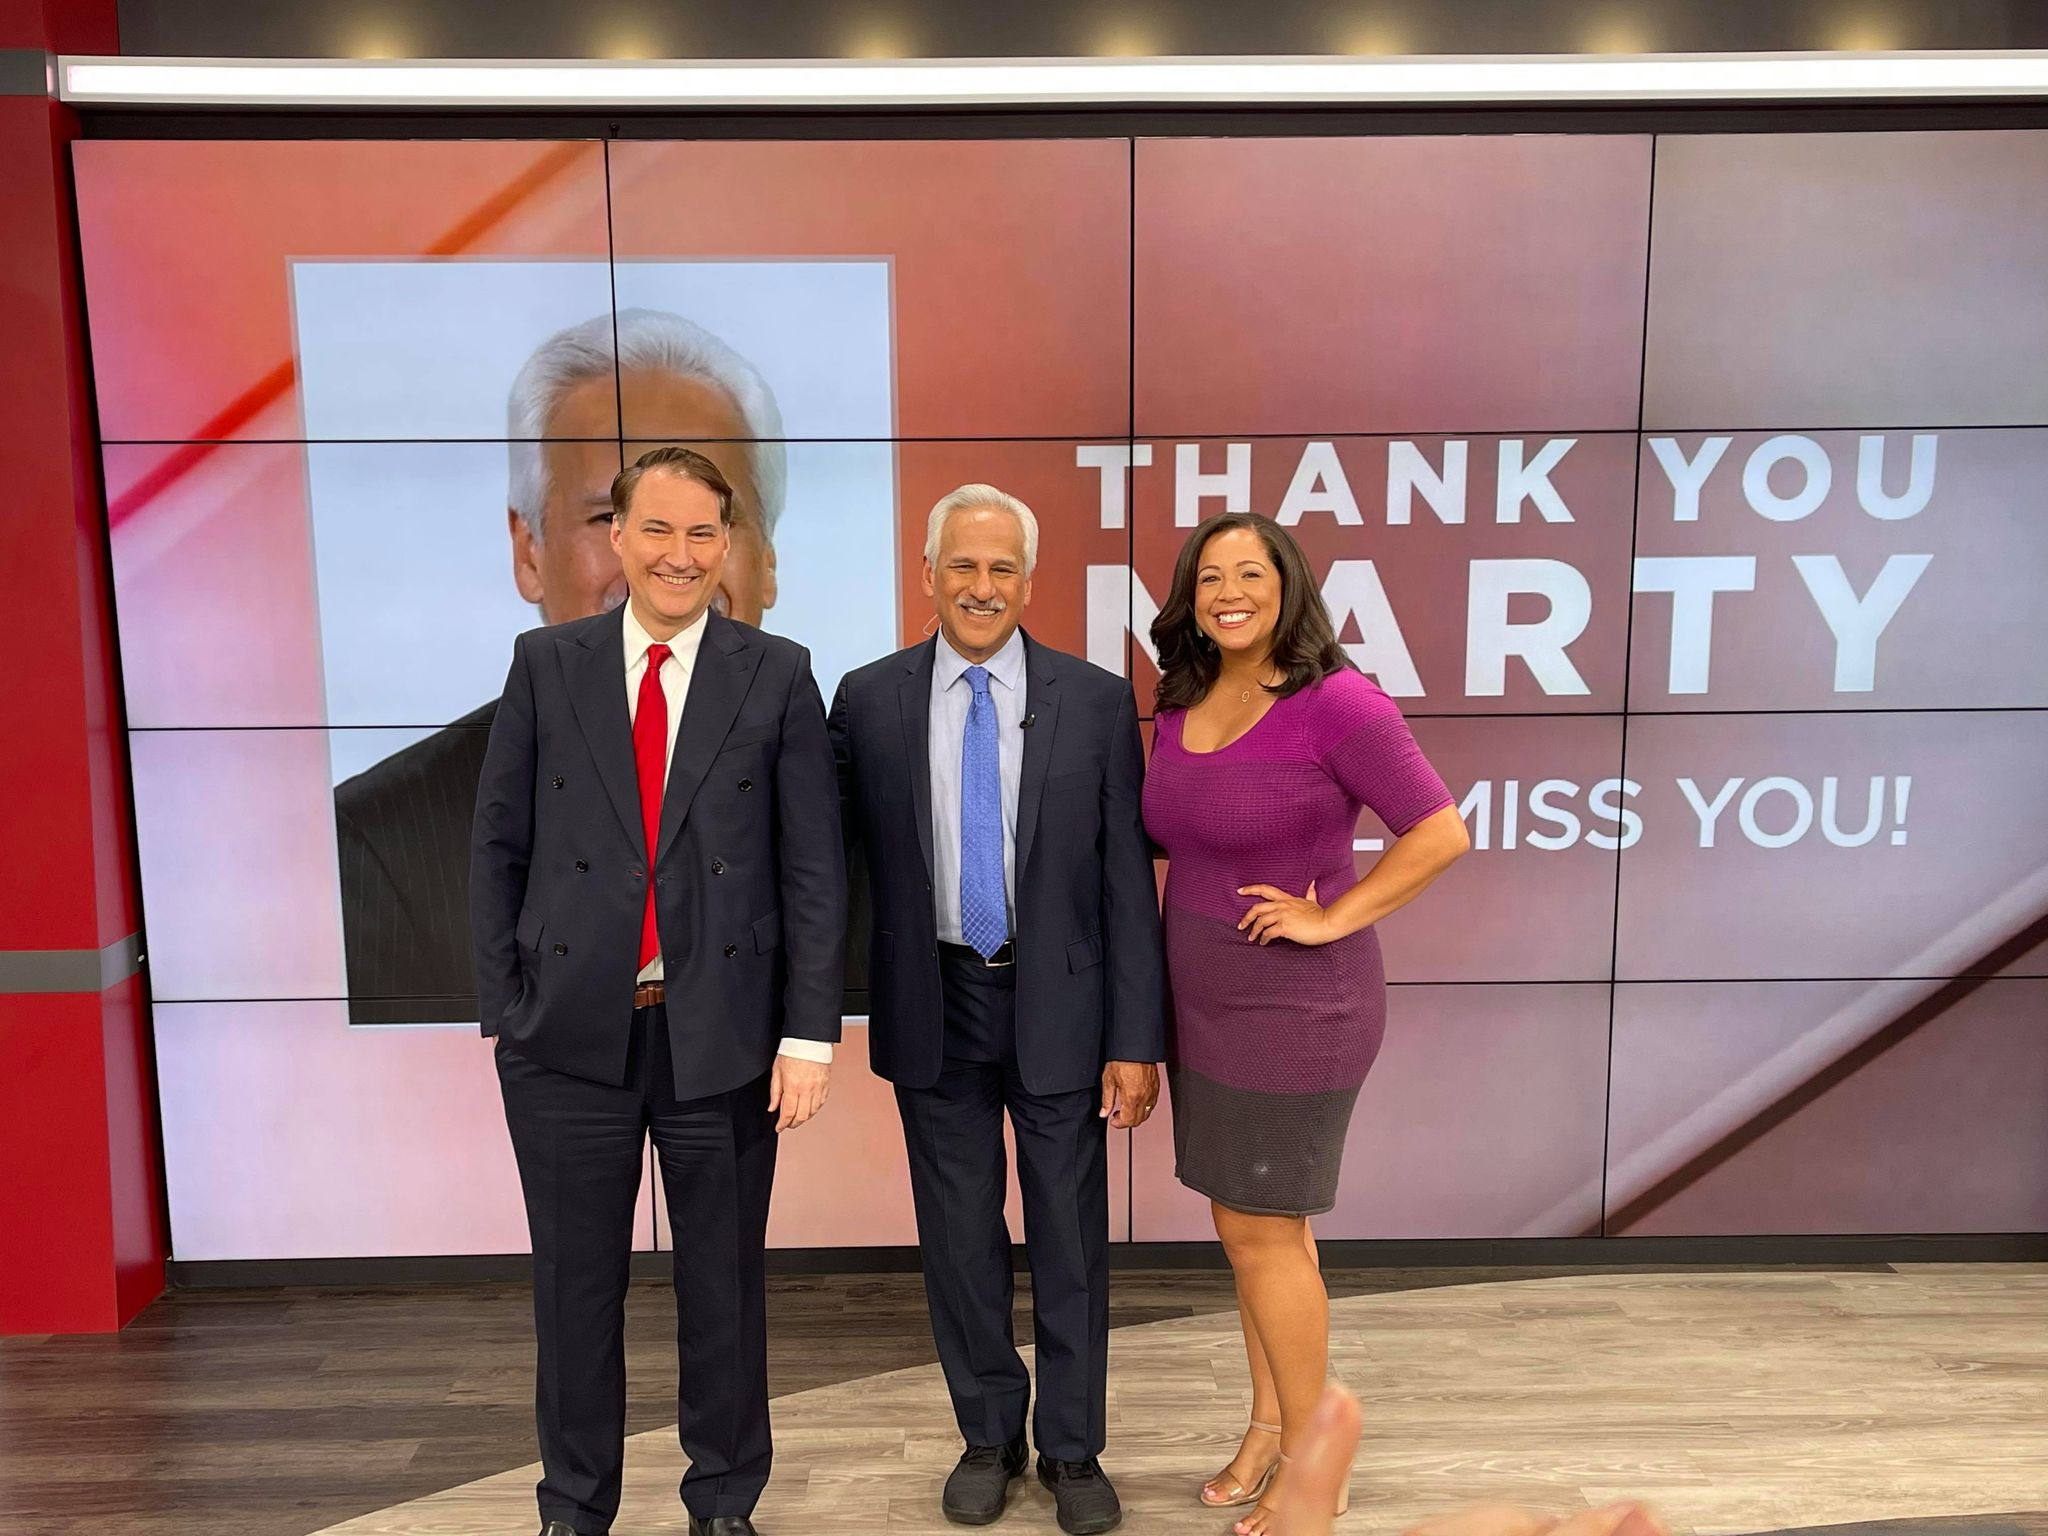 <div>KRON4's Marty Gonzalez signs off after 44 years in television</div>